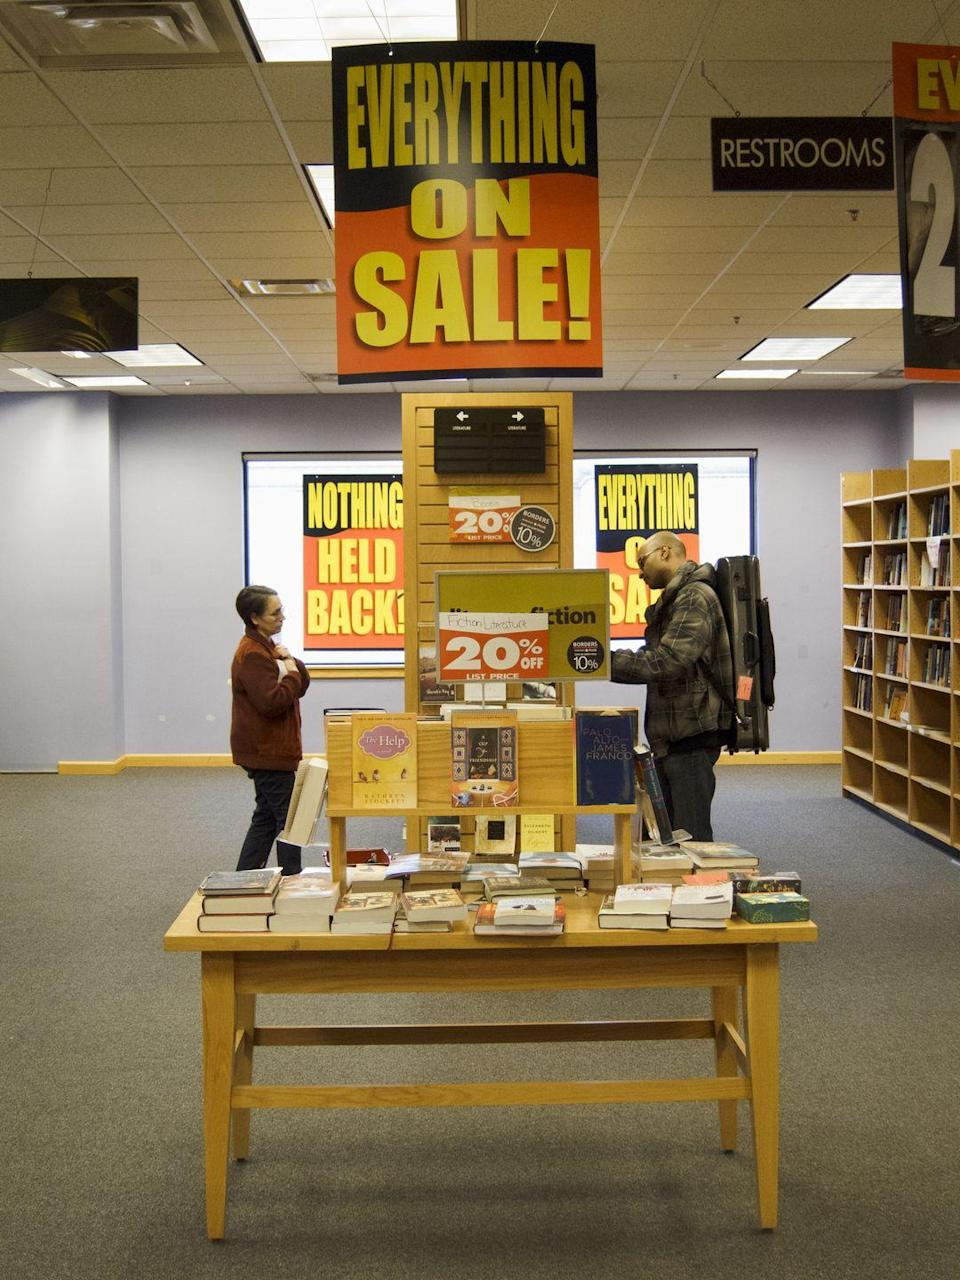 """<p>Behold: the bleakest, most cursed image you've ever seen. Why must the """"EVERYTHING ON SALE!"""" signs be in those terrible colors?! </p>"""